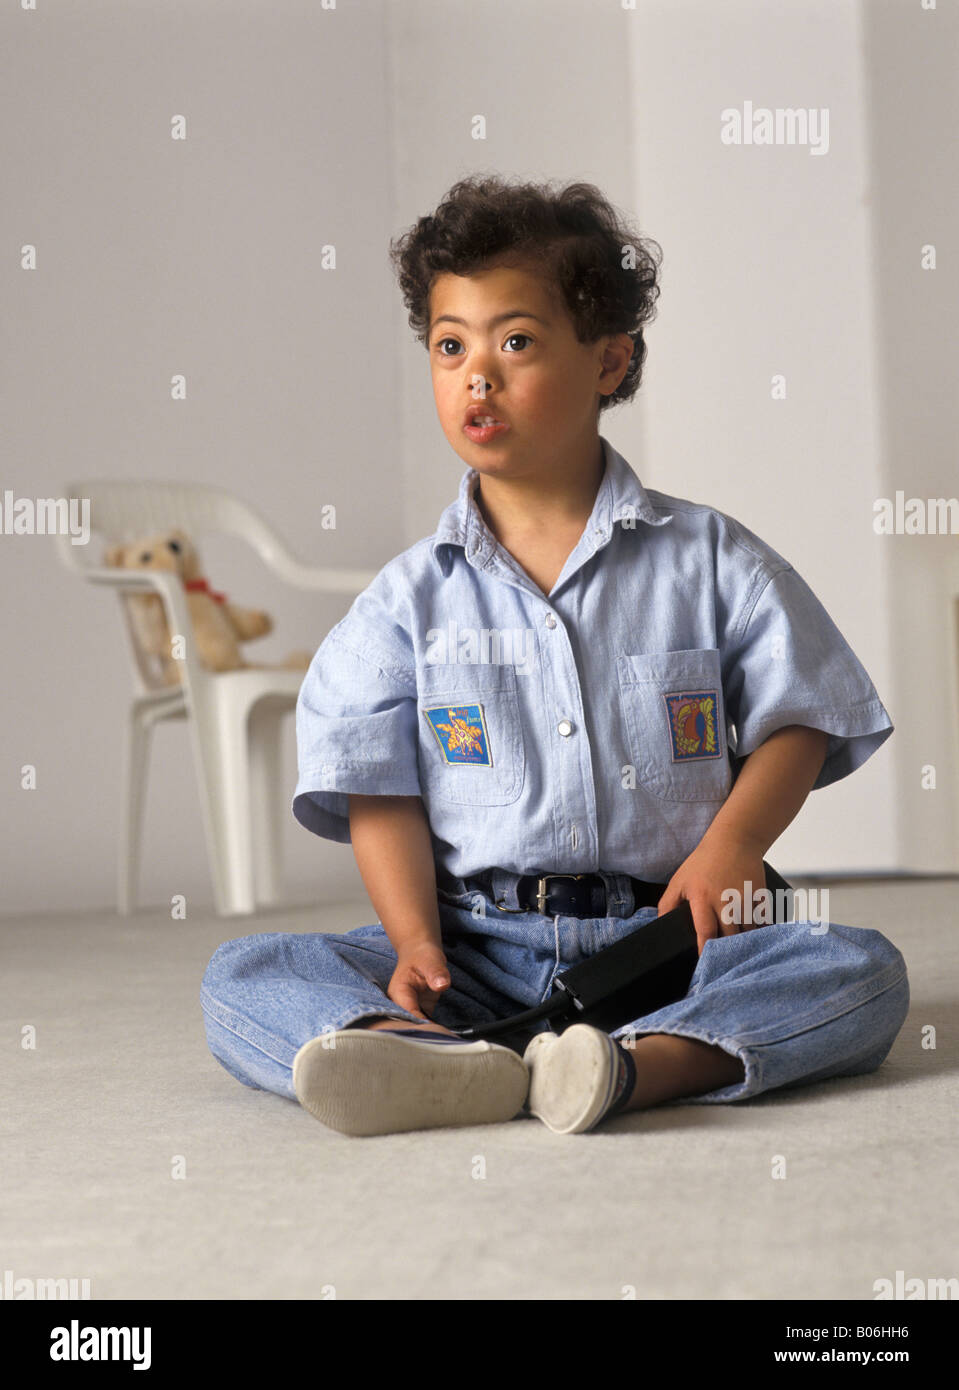 Child with Down syndrom - Stock Image